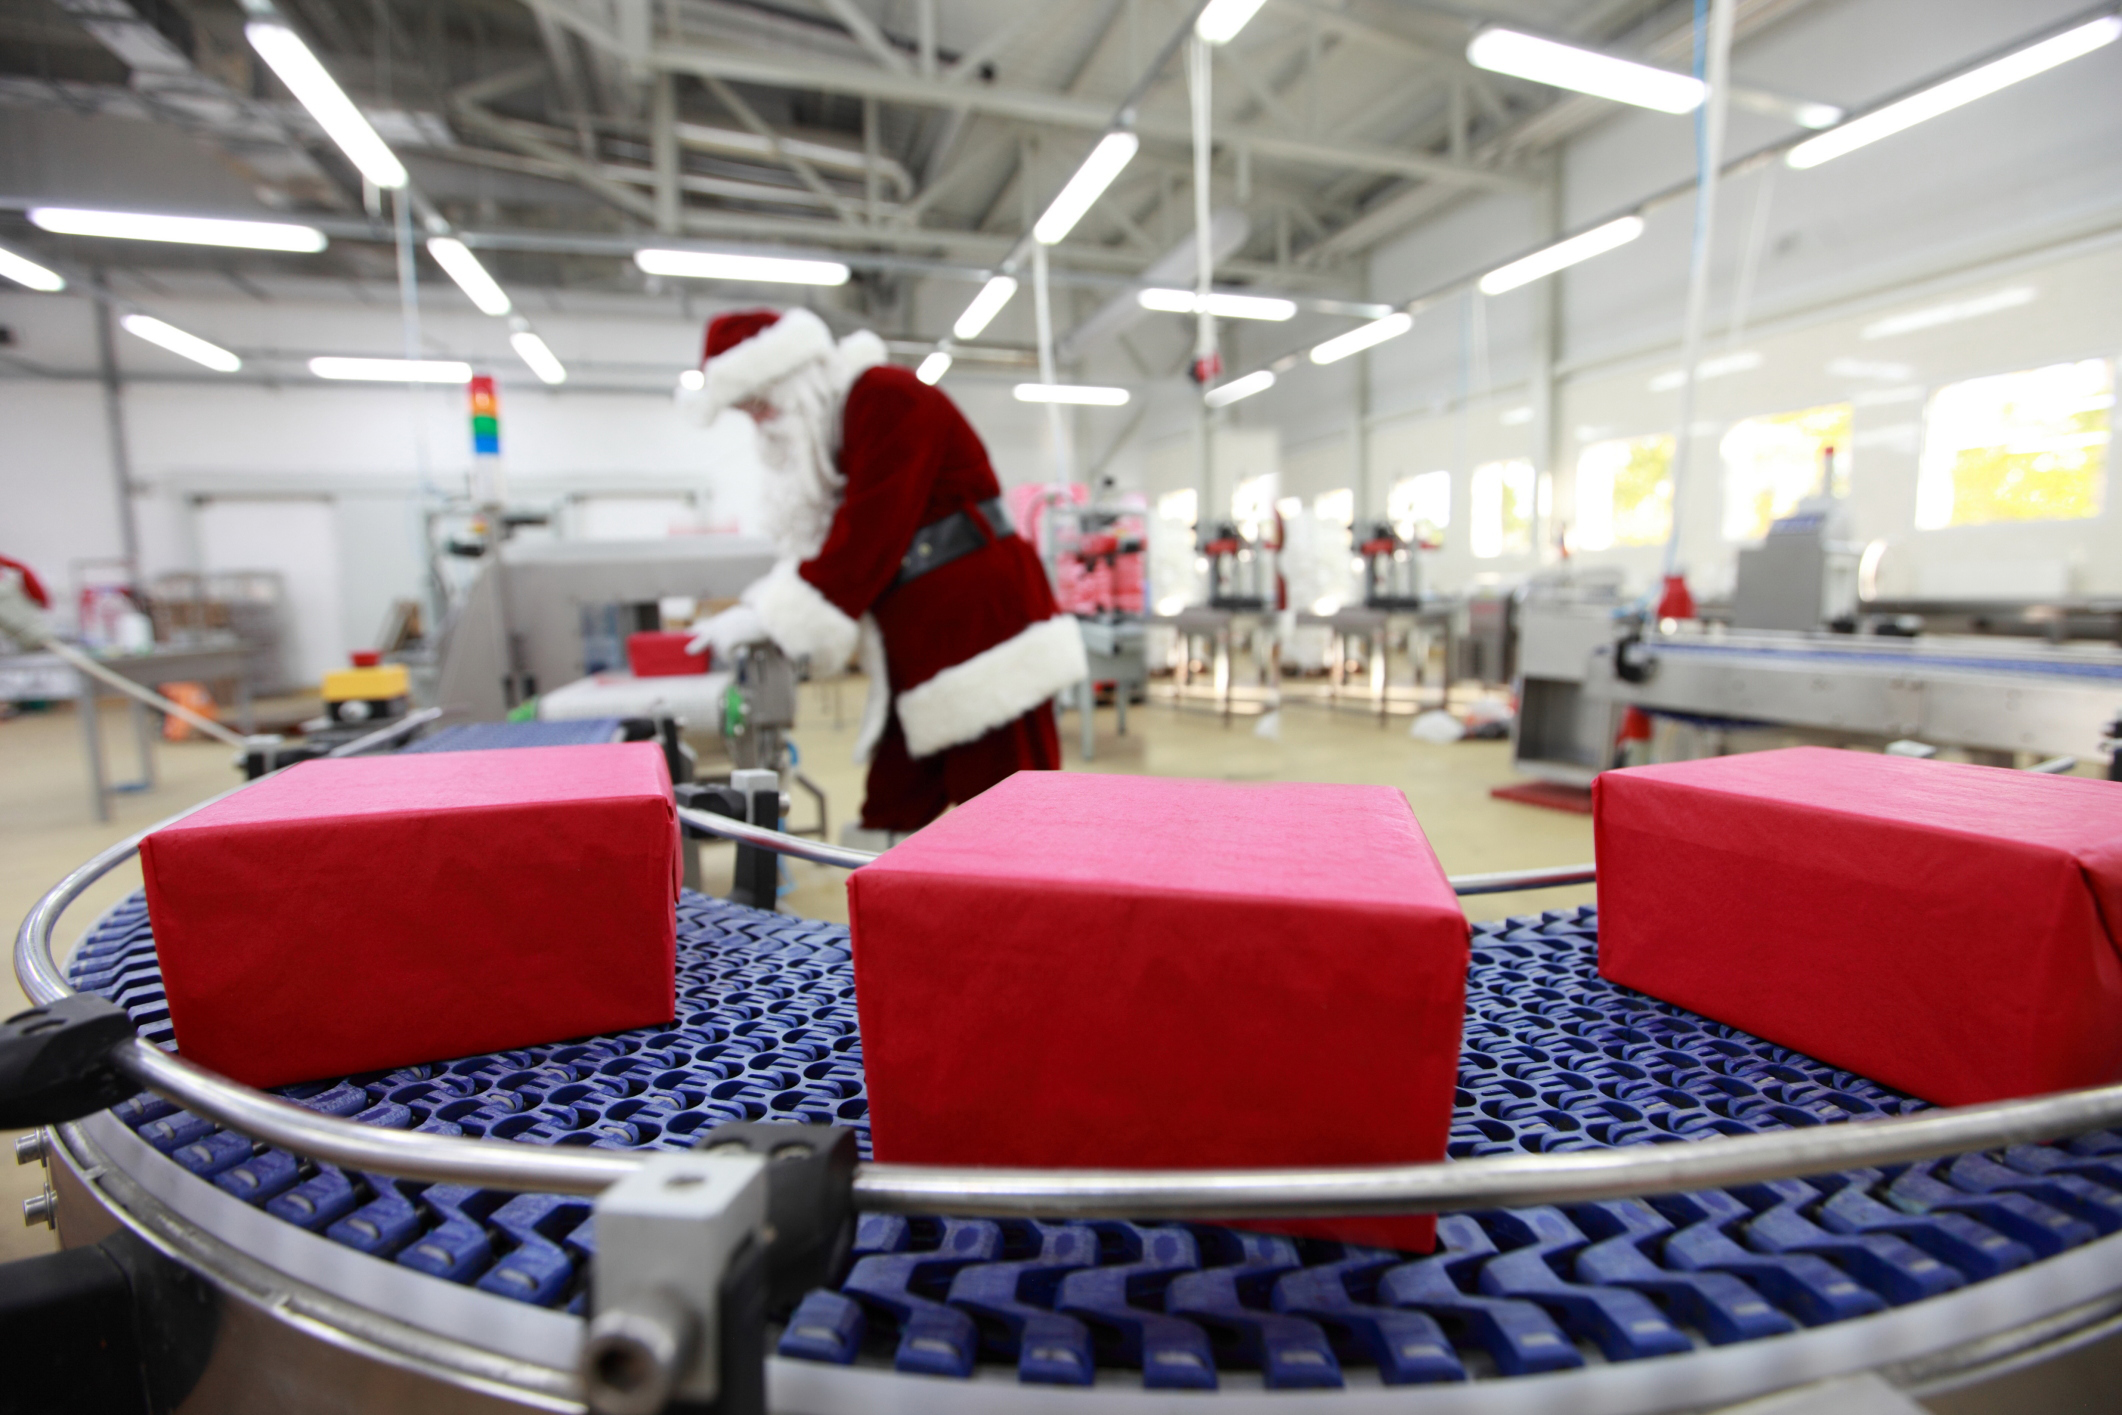 - santaInspection - Toy manufacturer replaces reliance on sketchy magic with IoT